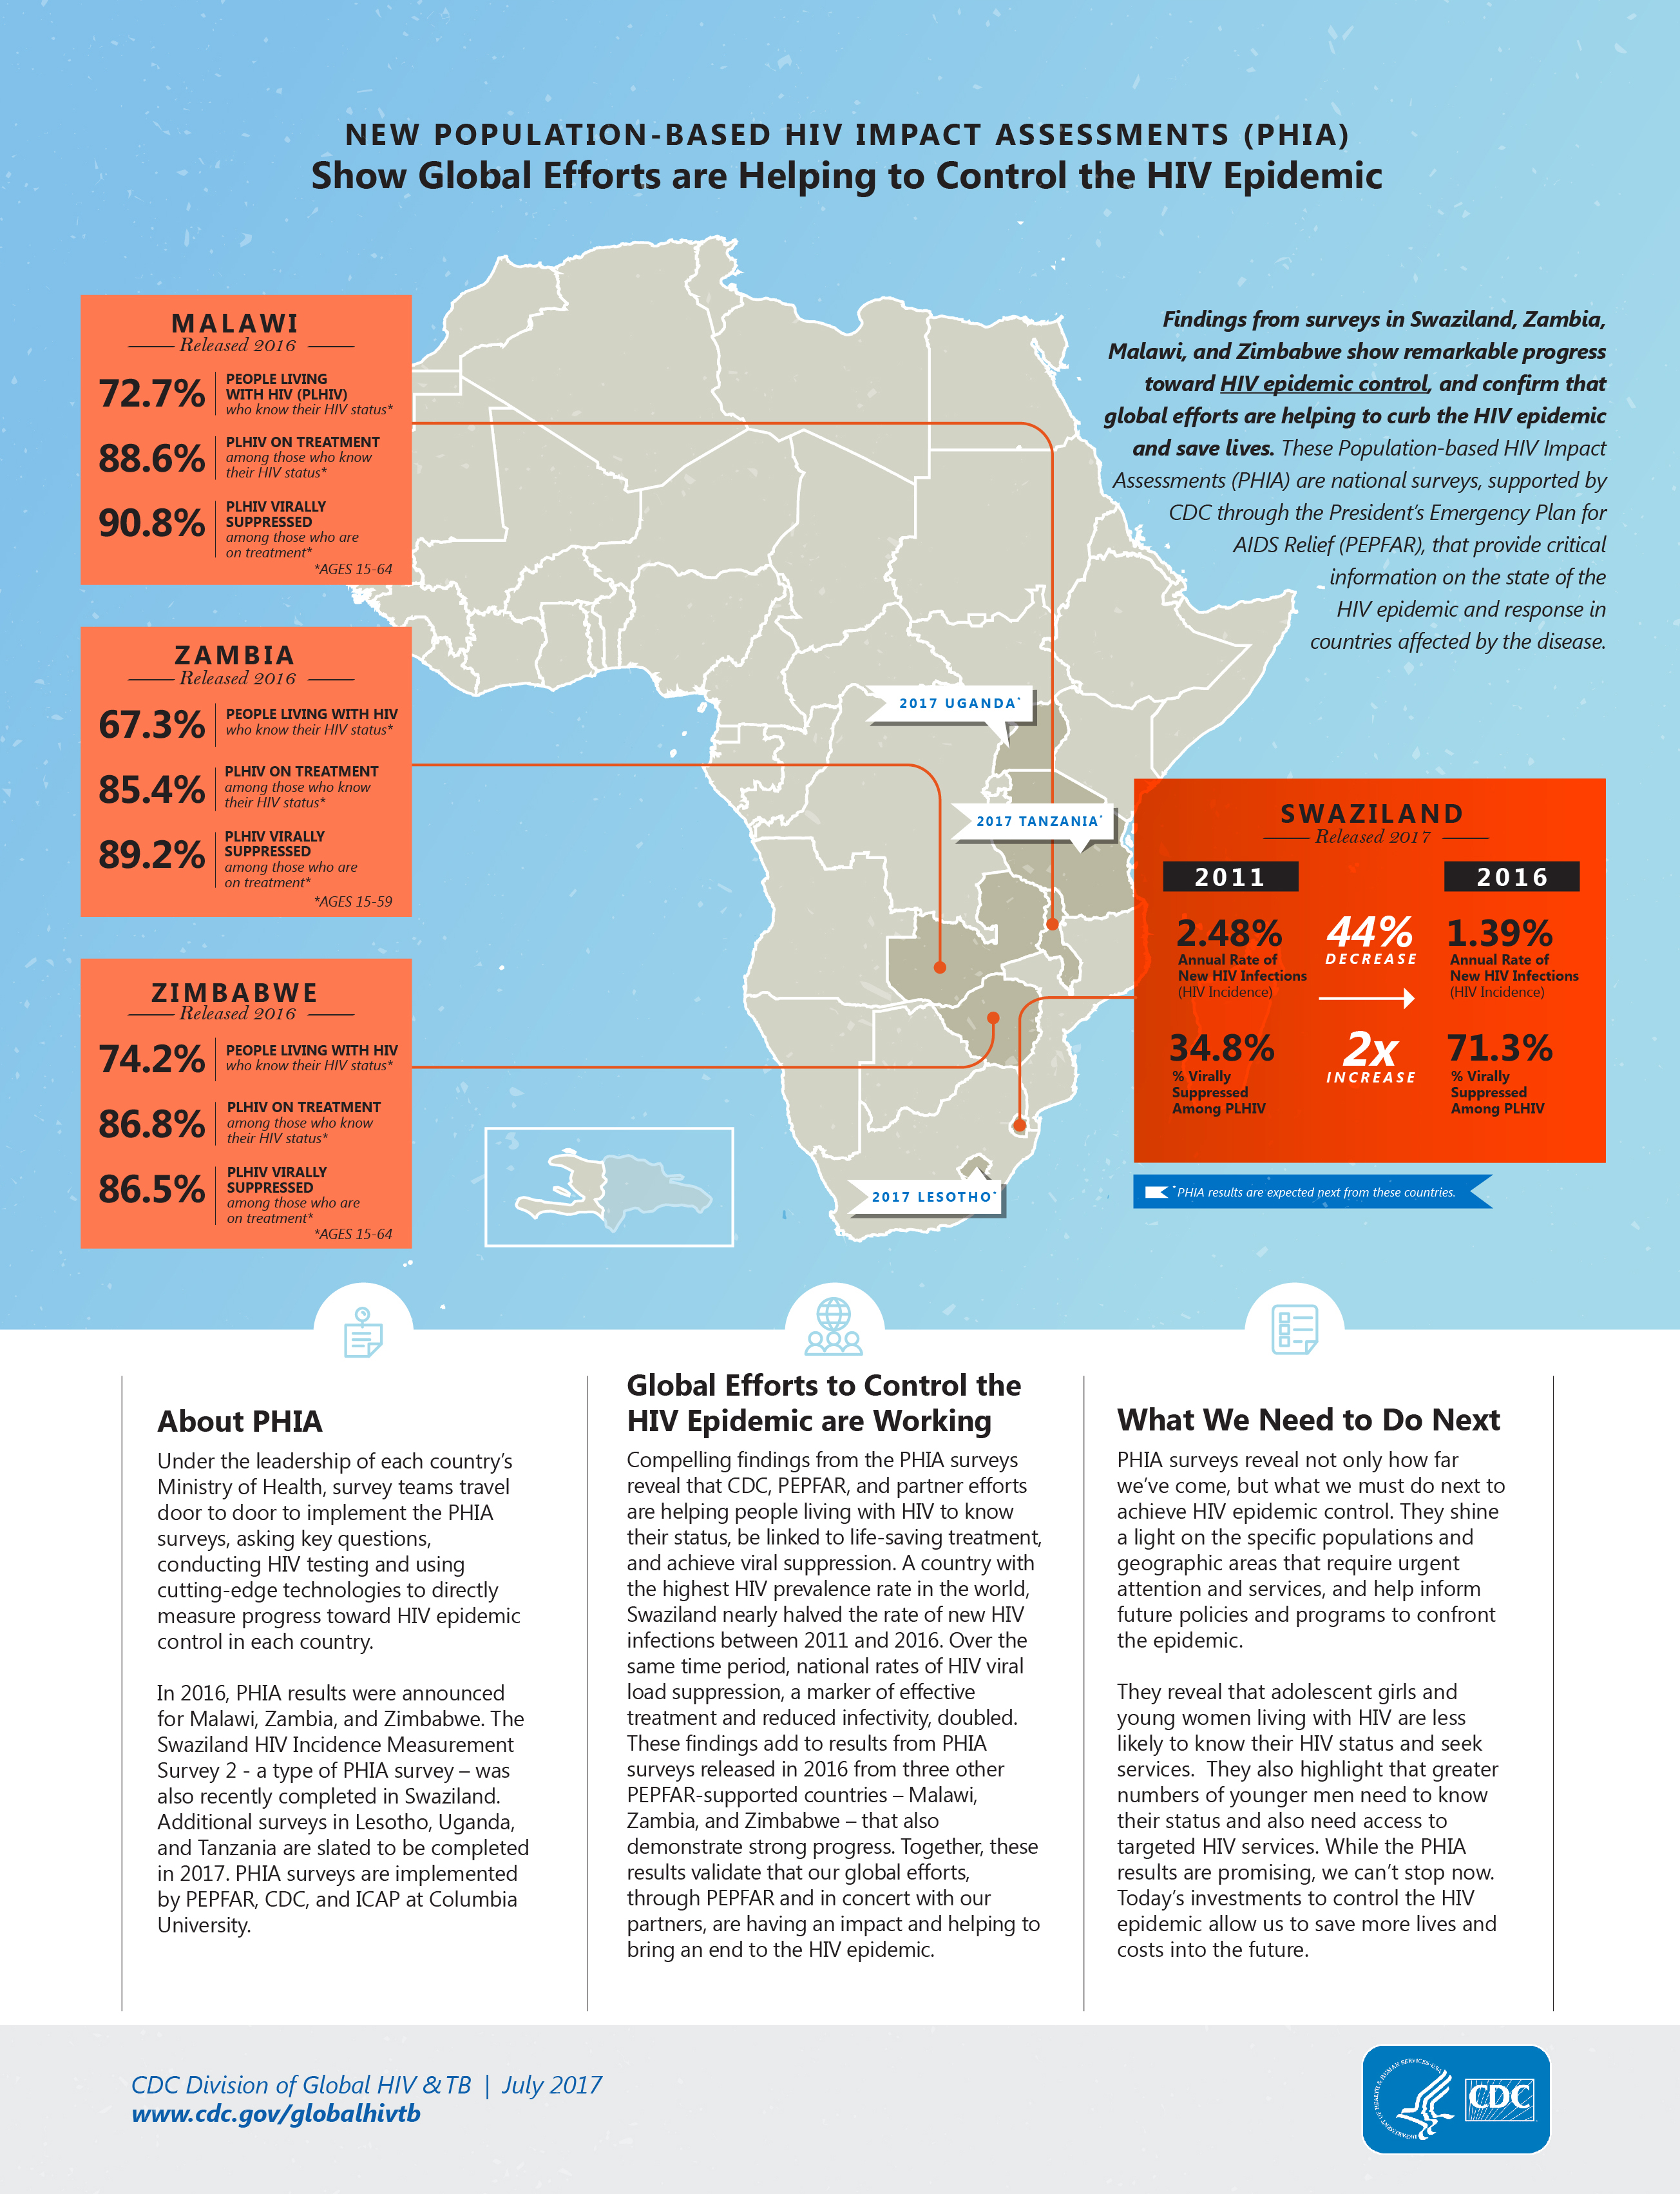 New population-based HIV impact statements (PHIA) show global efforts are helping to control the HIV epidemic